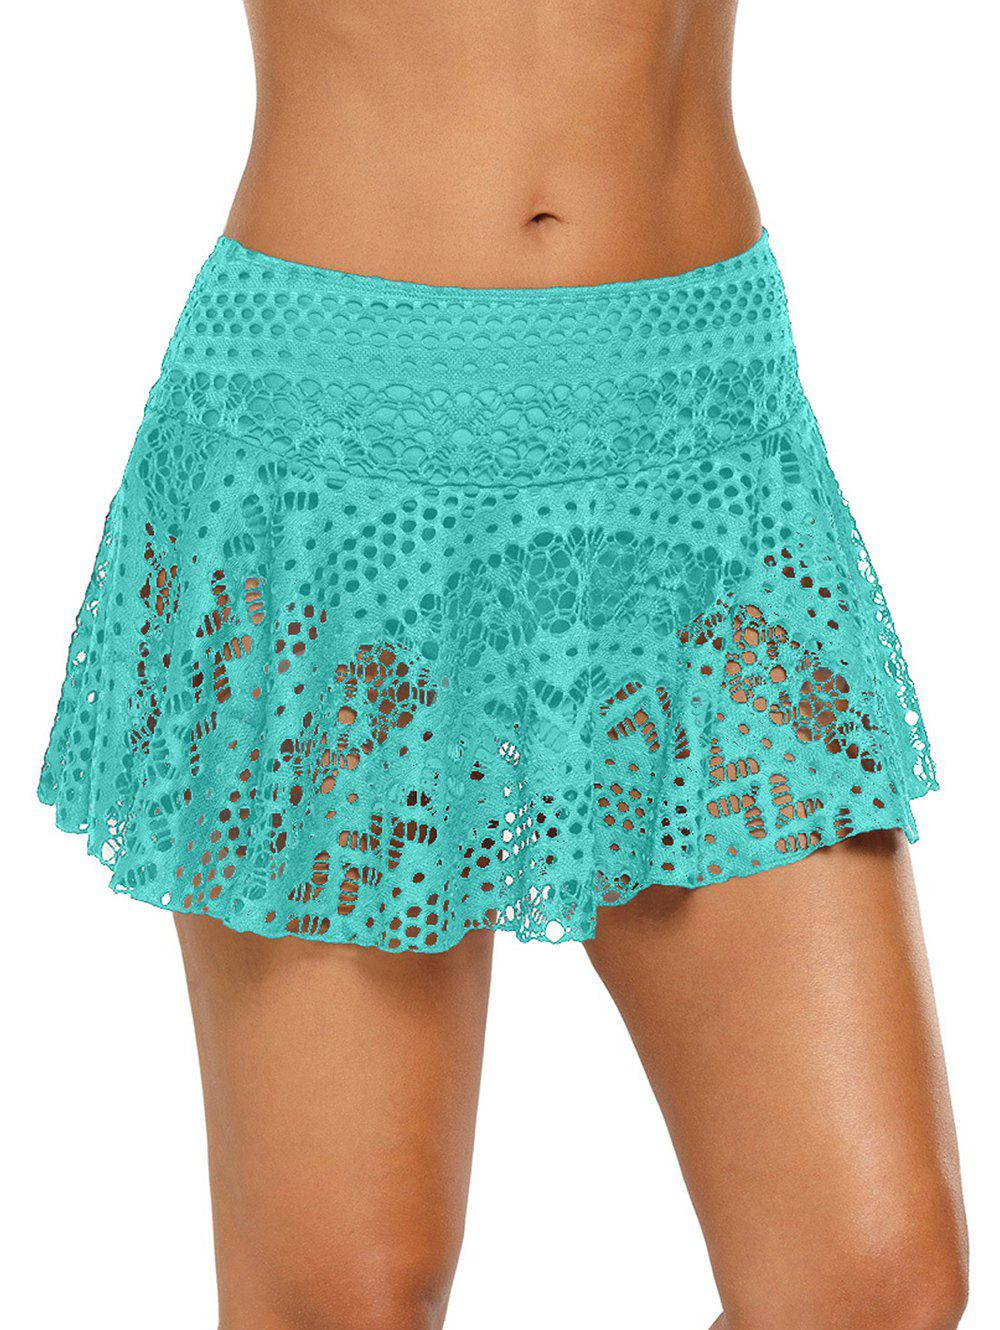 Store Solid Color Skirted Swimming Briefs